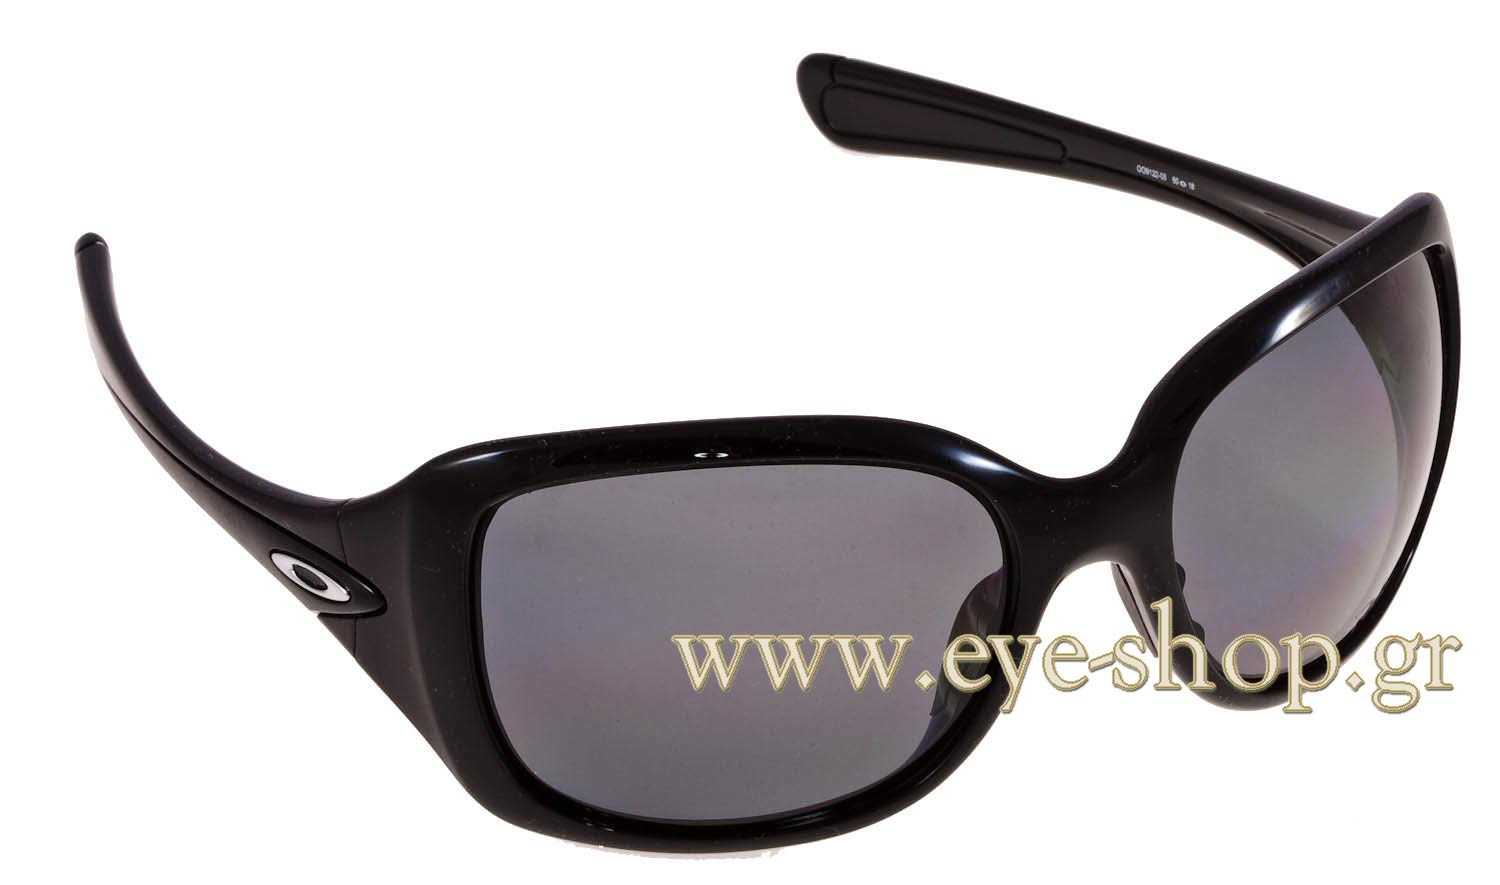 7219a96832e SUNGLASSES Oakley Necessity 9122 05 polarized